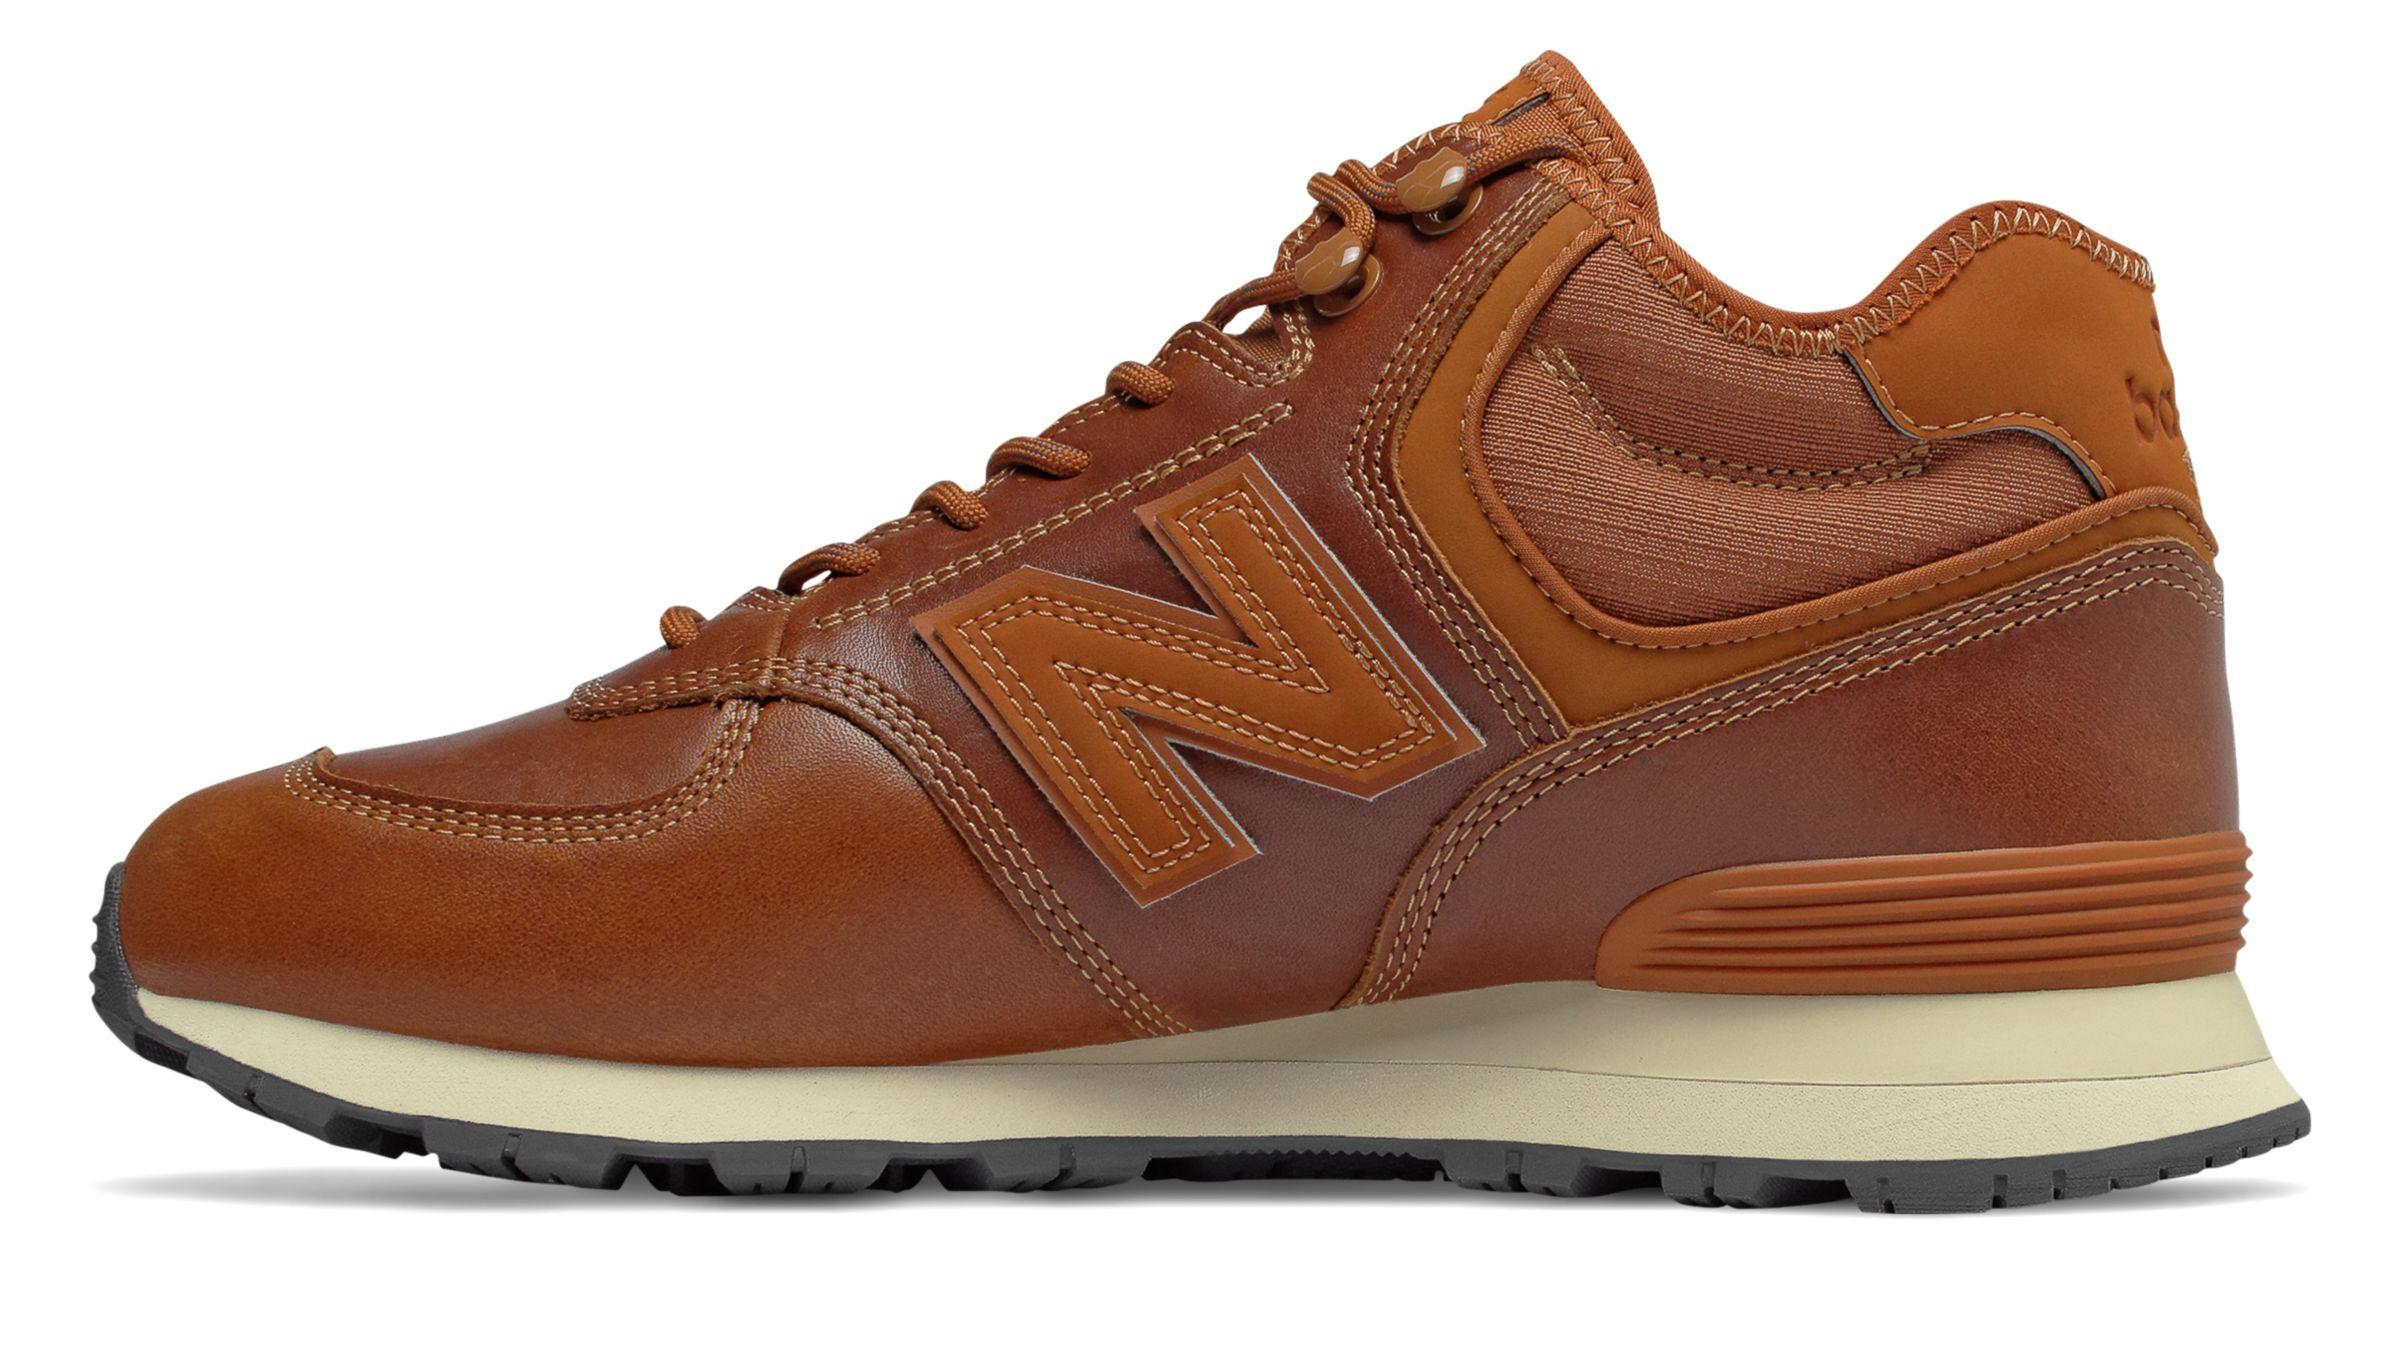 New Balance Leather 574 Mid-cut Running Shoes in Orange (Brown ...